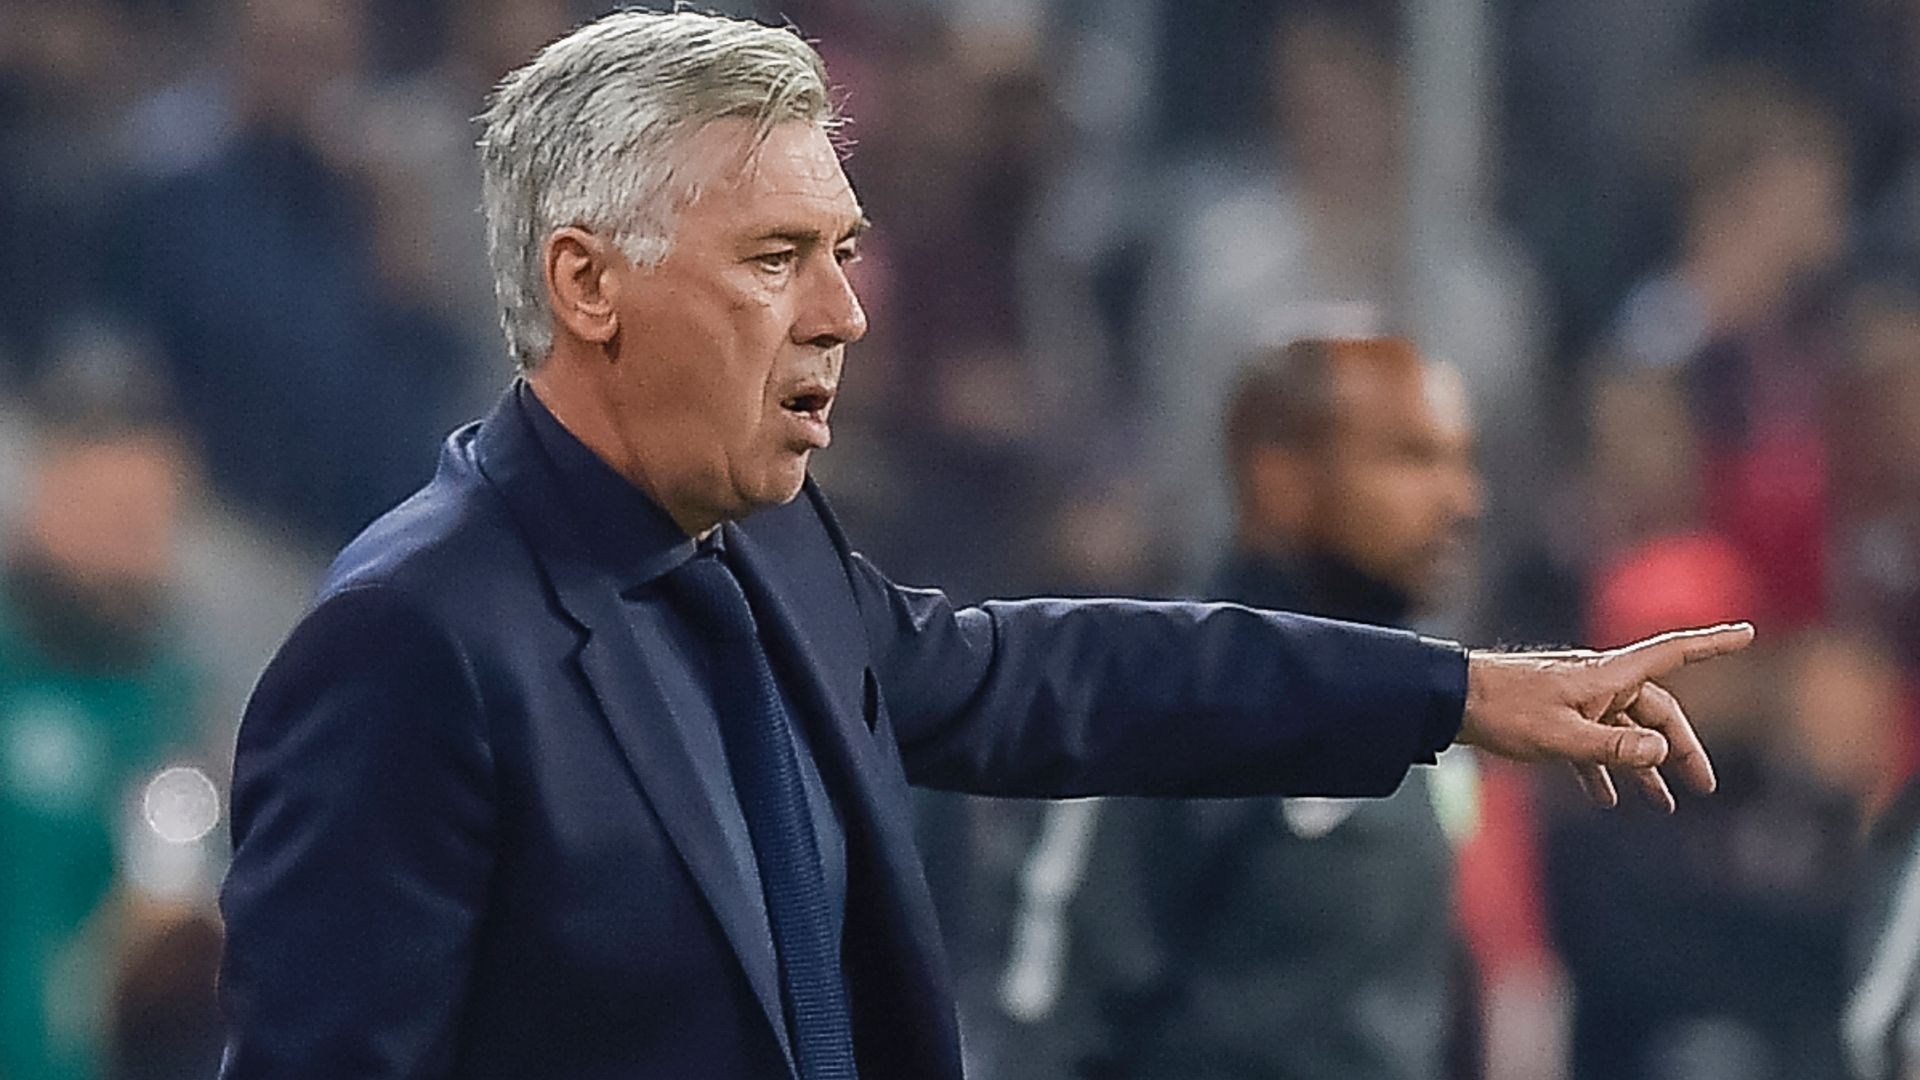 Ancelotti in talks to coach Italy - reports